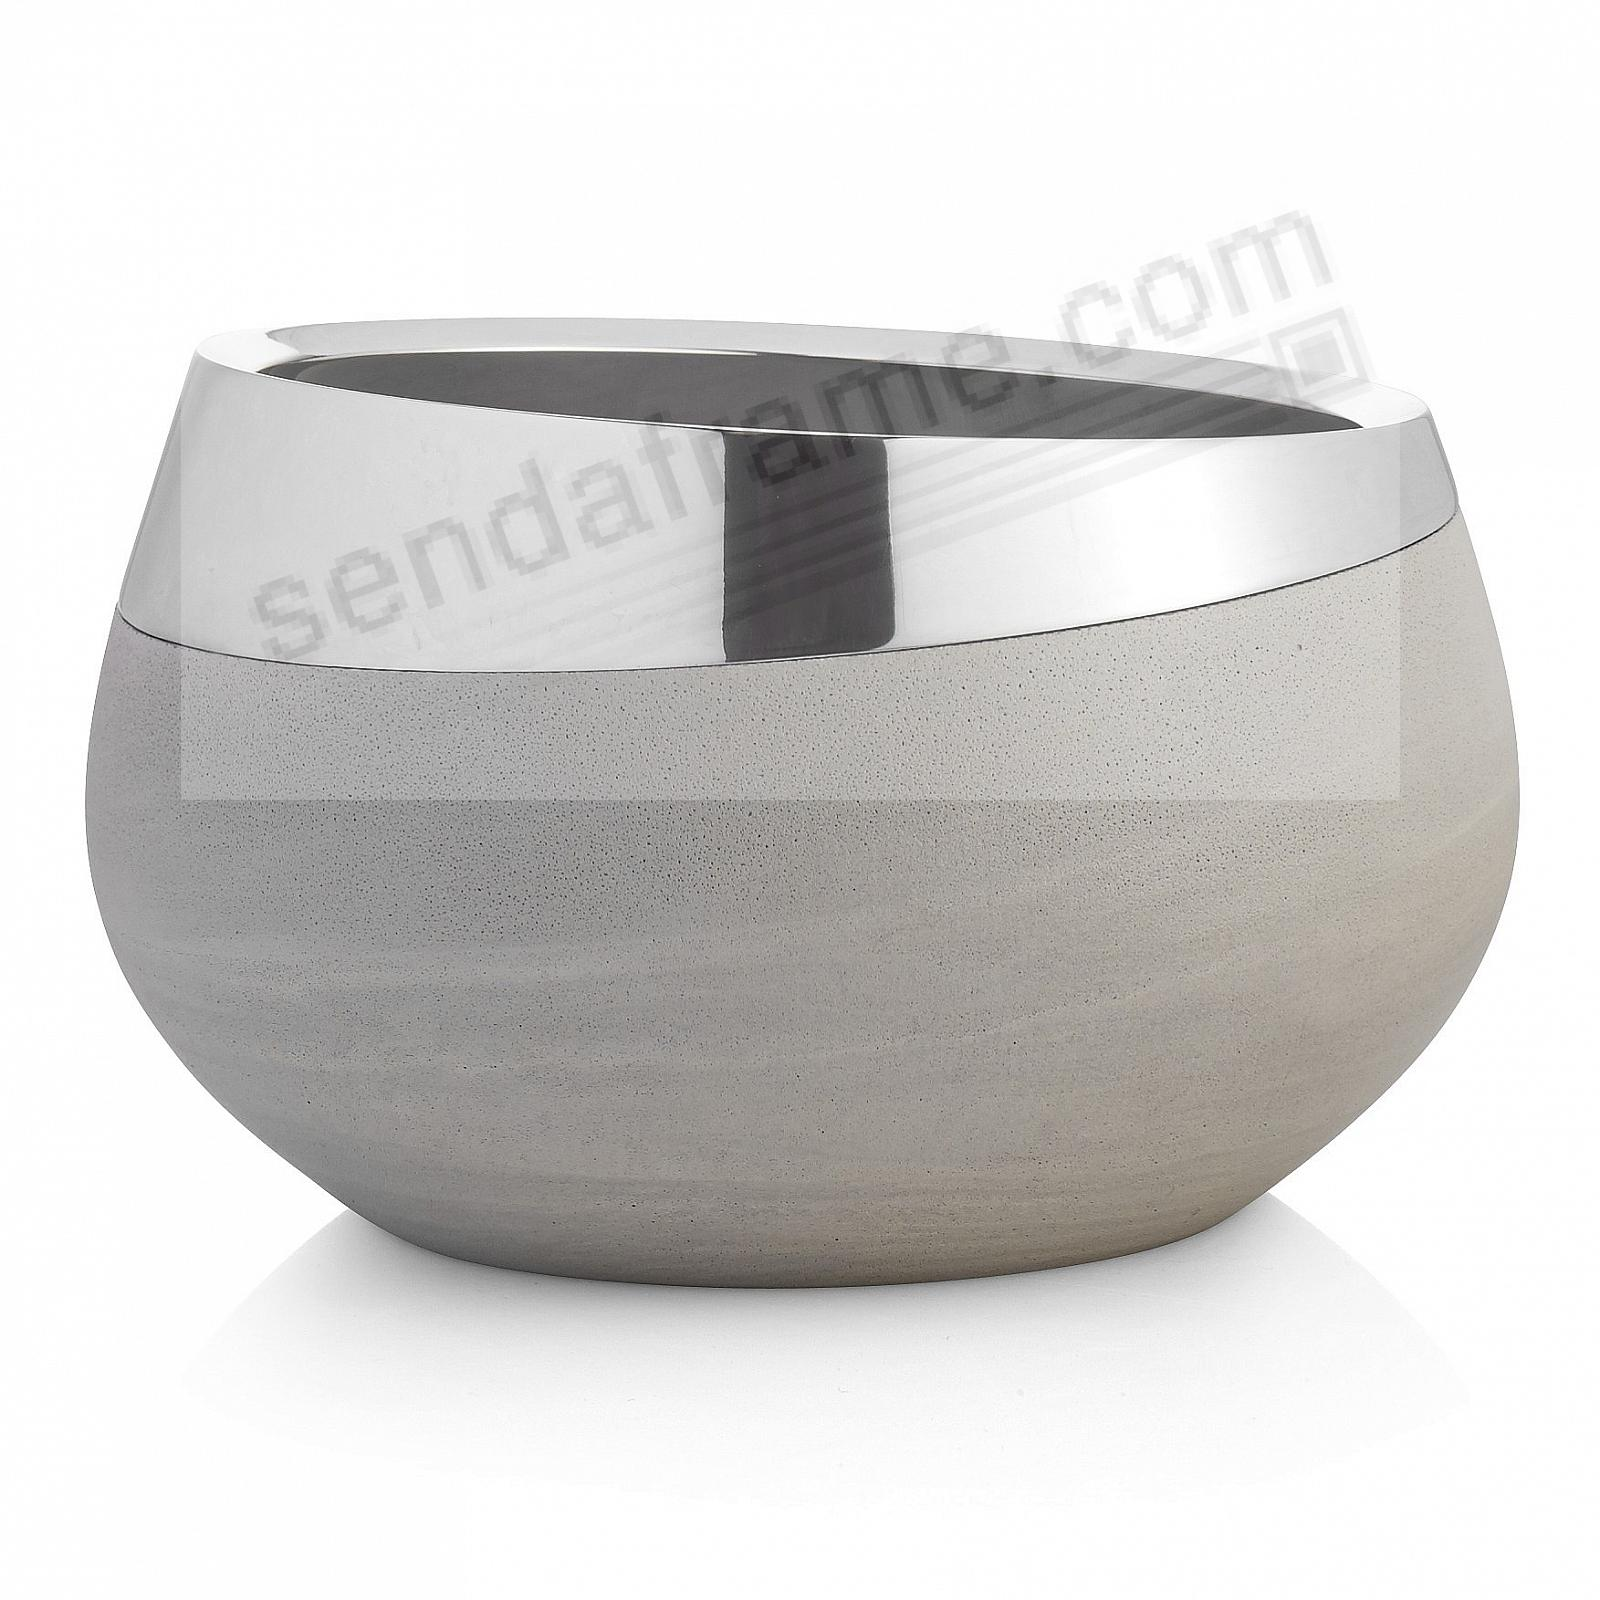 The Original FORTE 8in (Medium) BOWL crafted by Nambe®